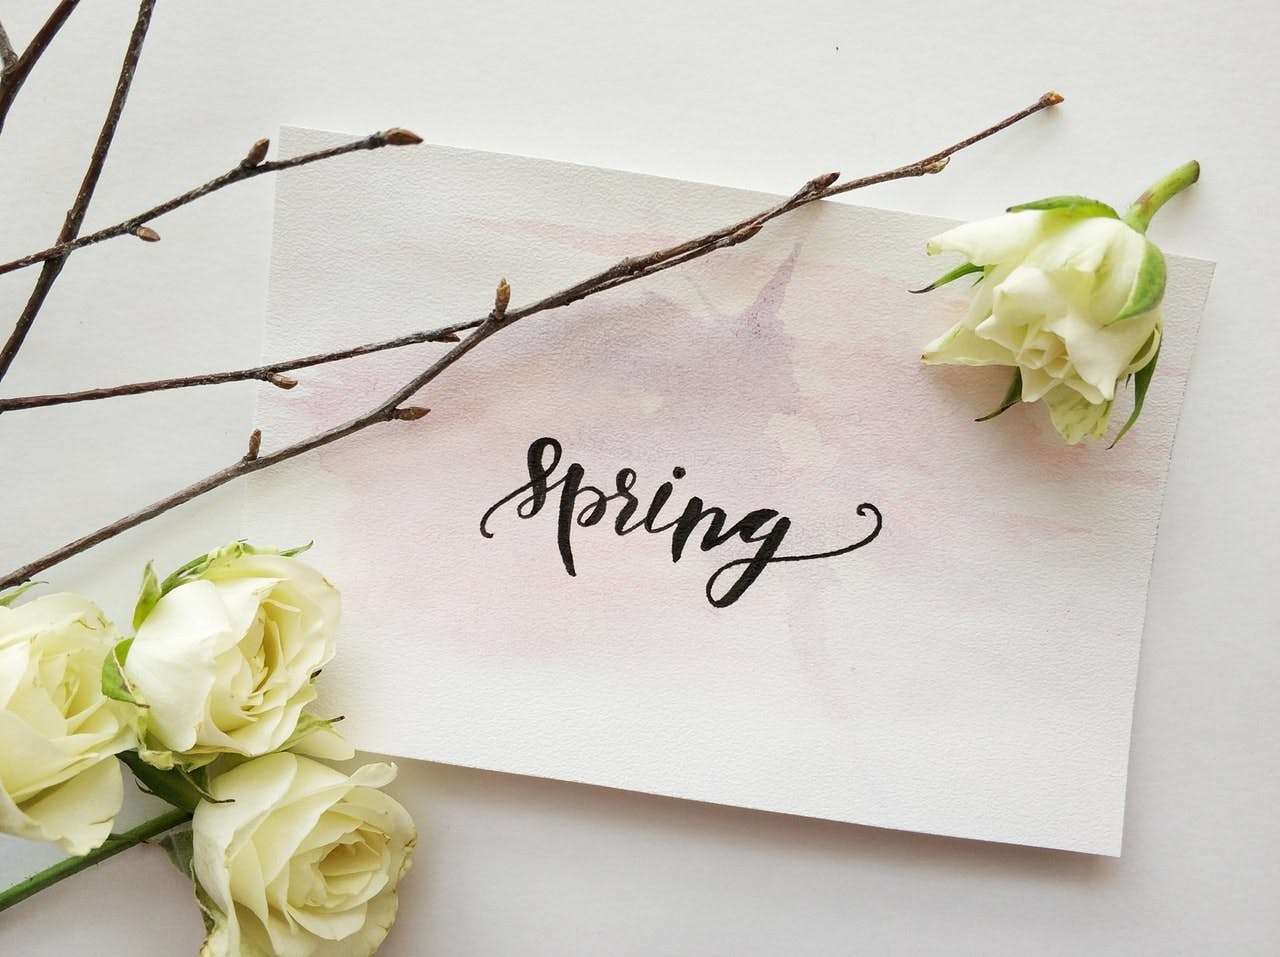 Spring written on paper with flowers